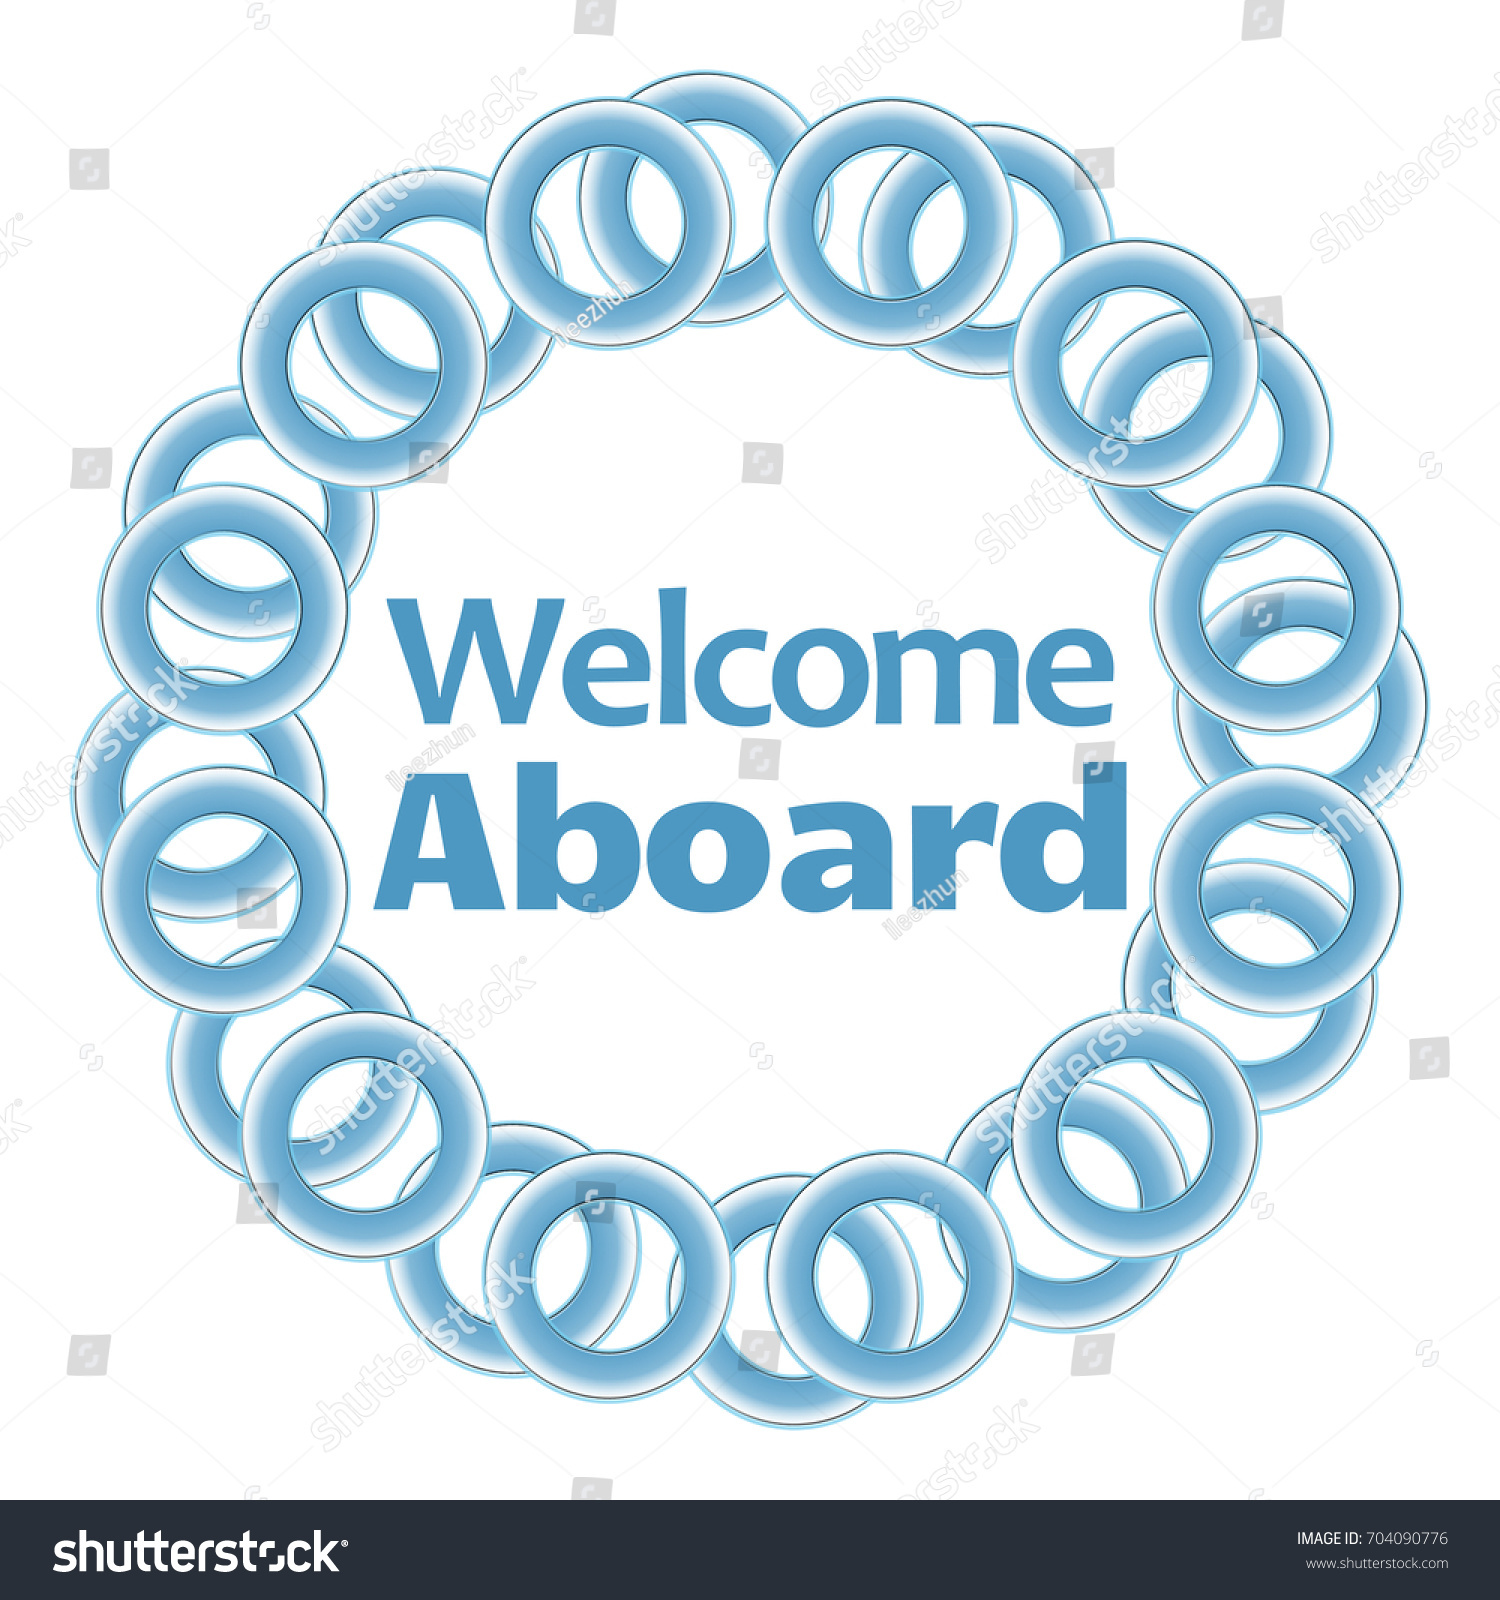 Welcome Aboard Text Inside Blue Rings Stock Illustration 704090776